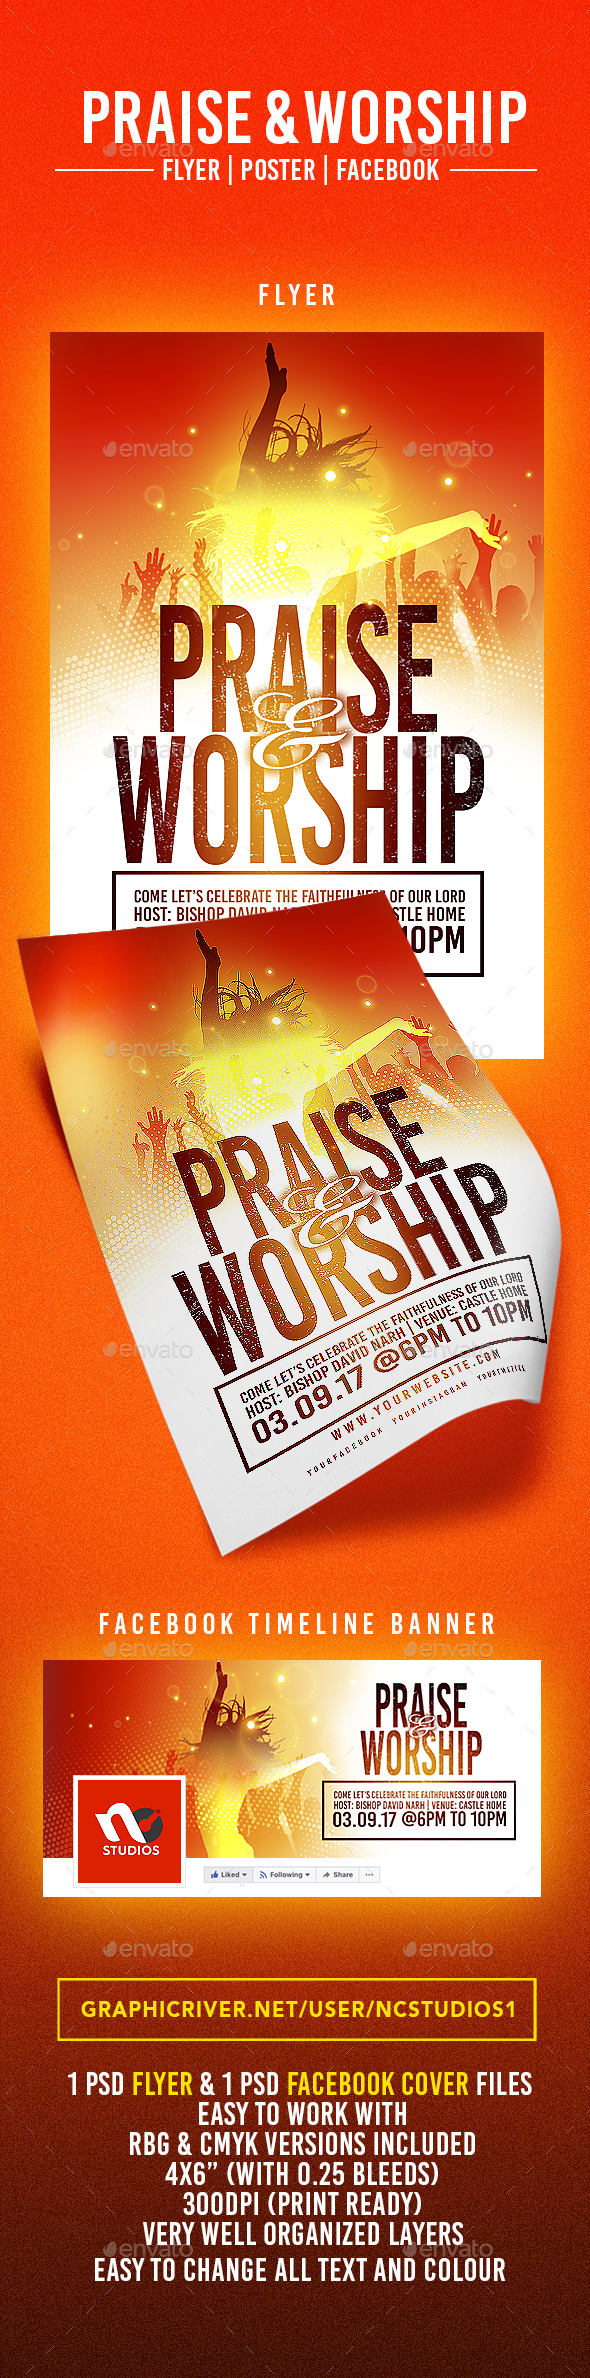 Praise & Worship Flyer Template - Events Flyers